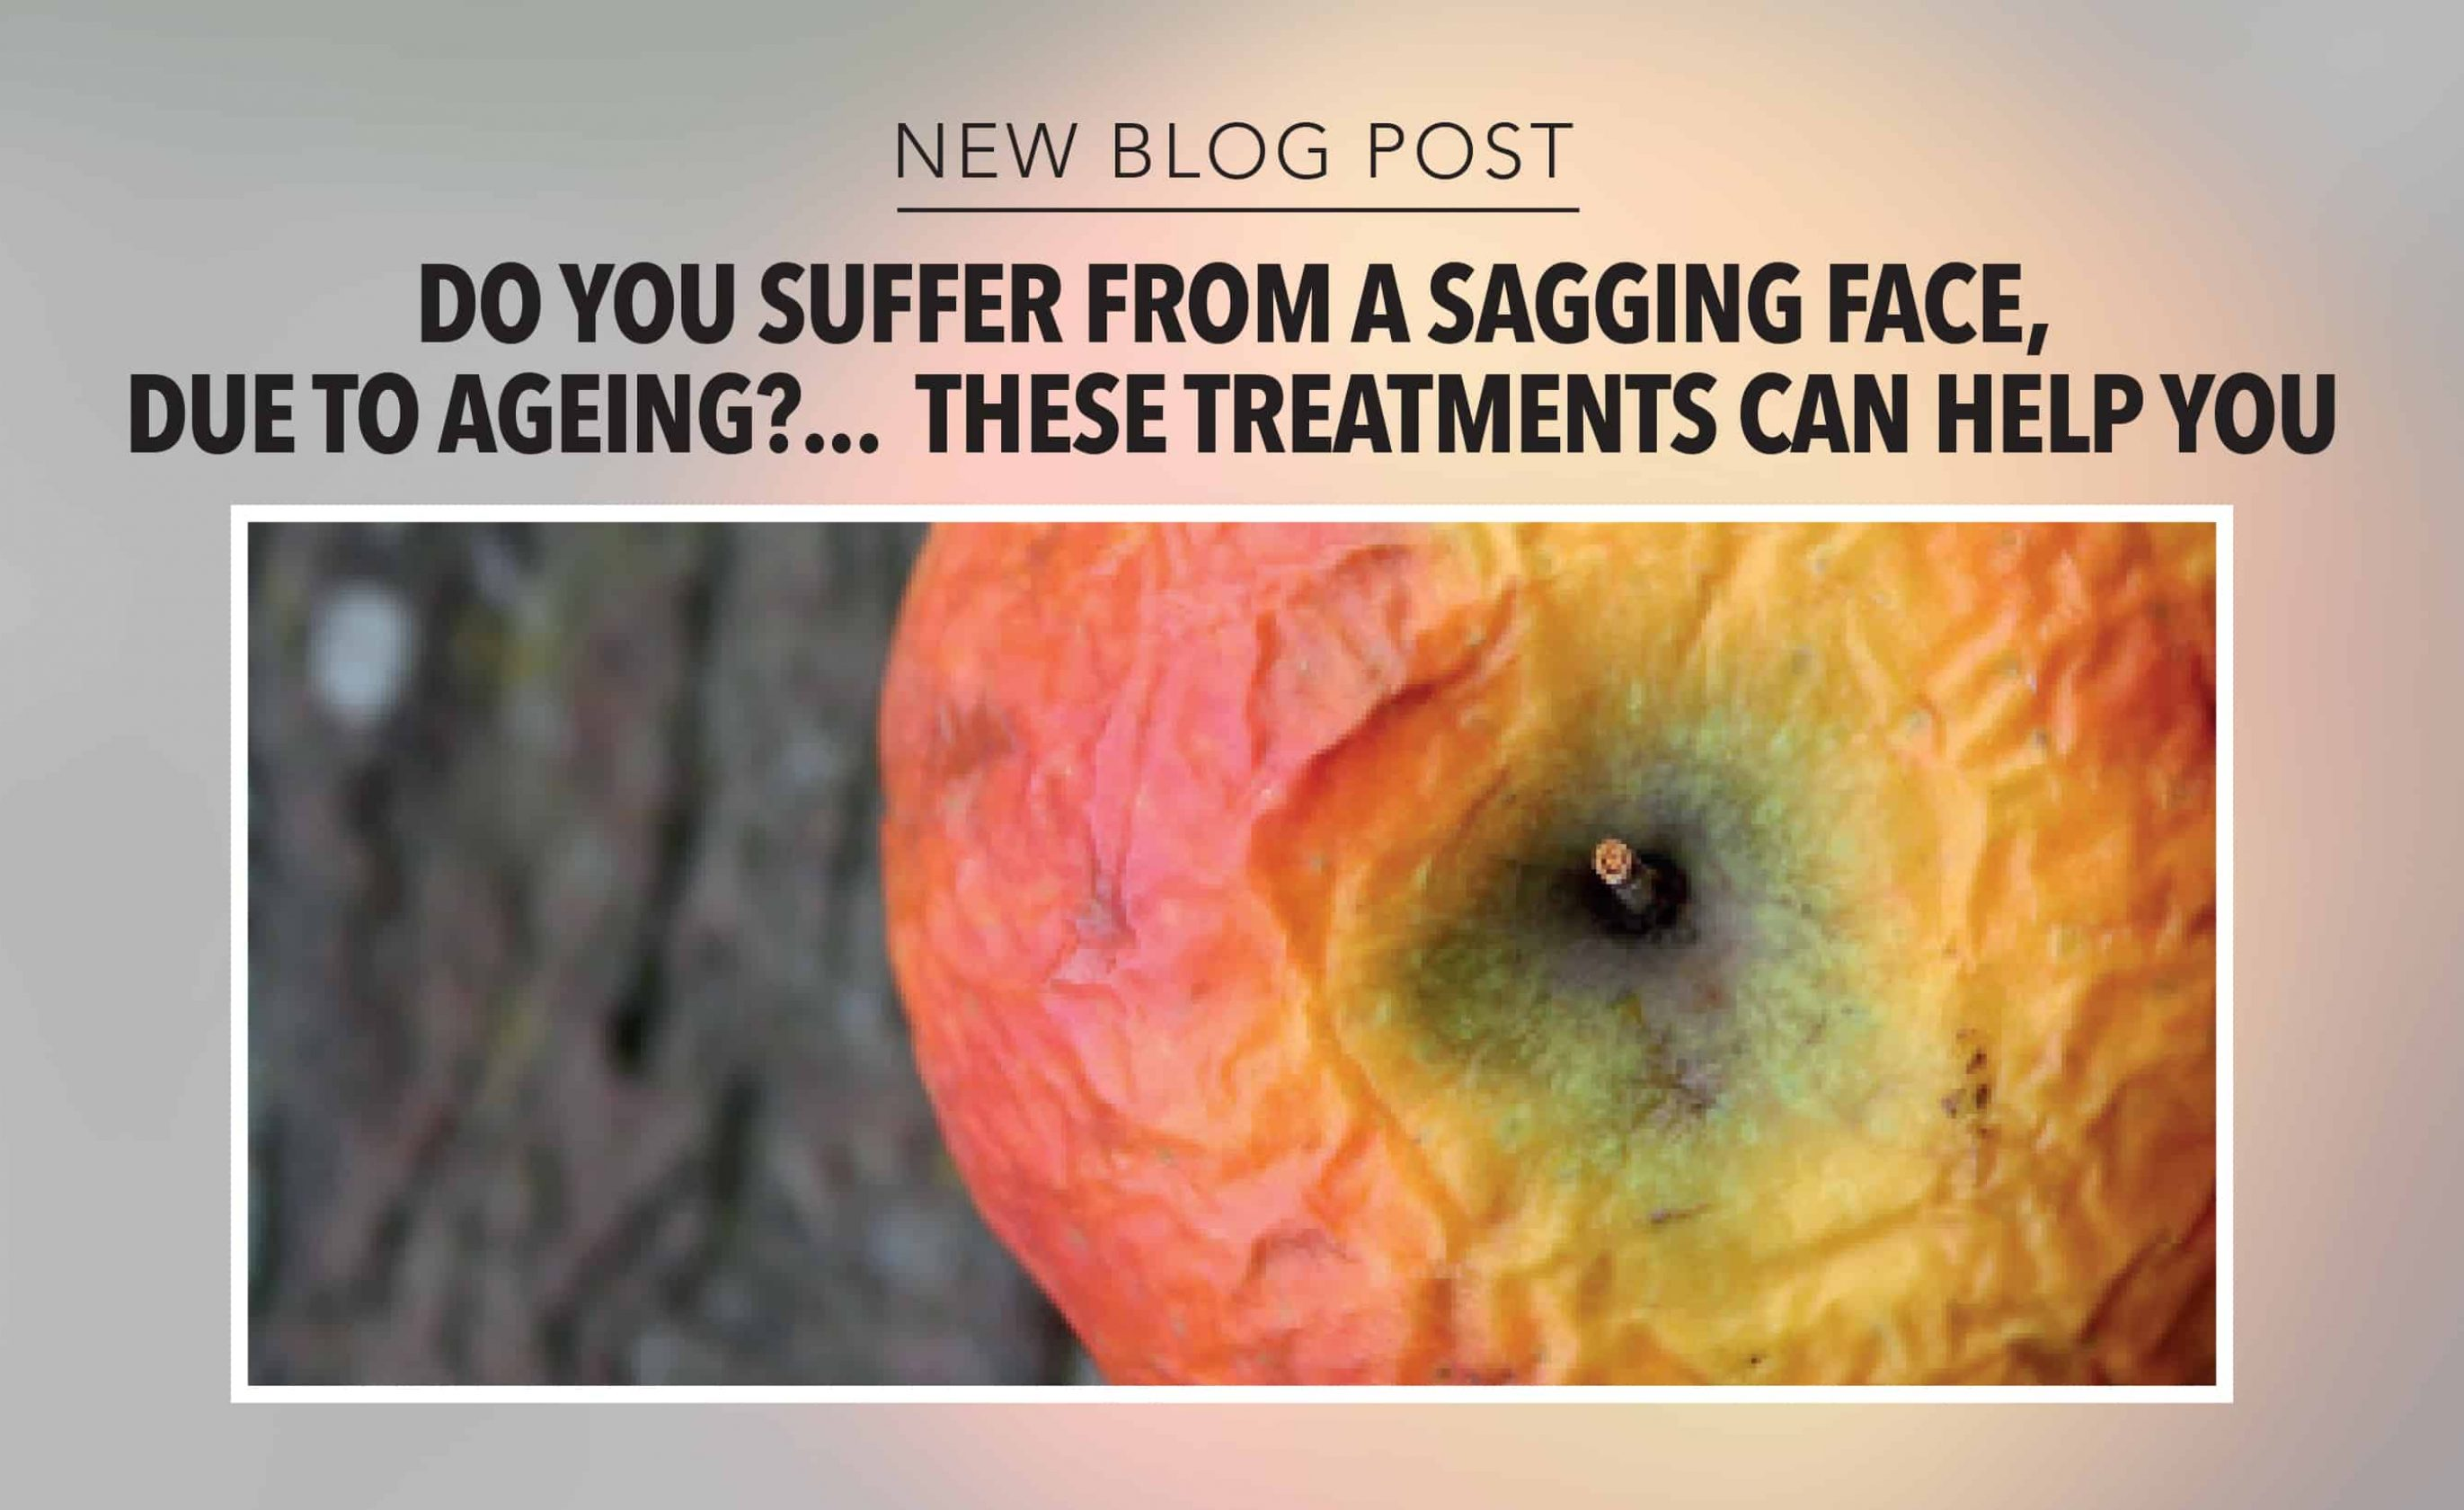 Do you suffer from a sagging face due to ageing?